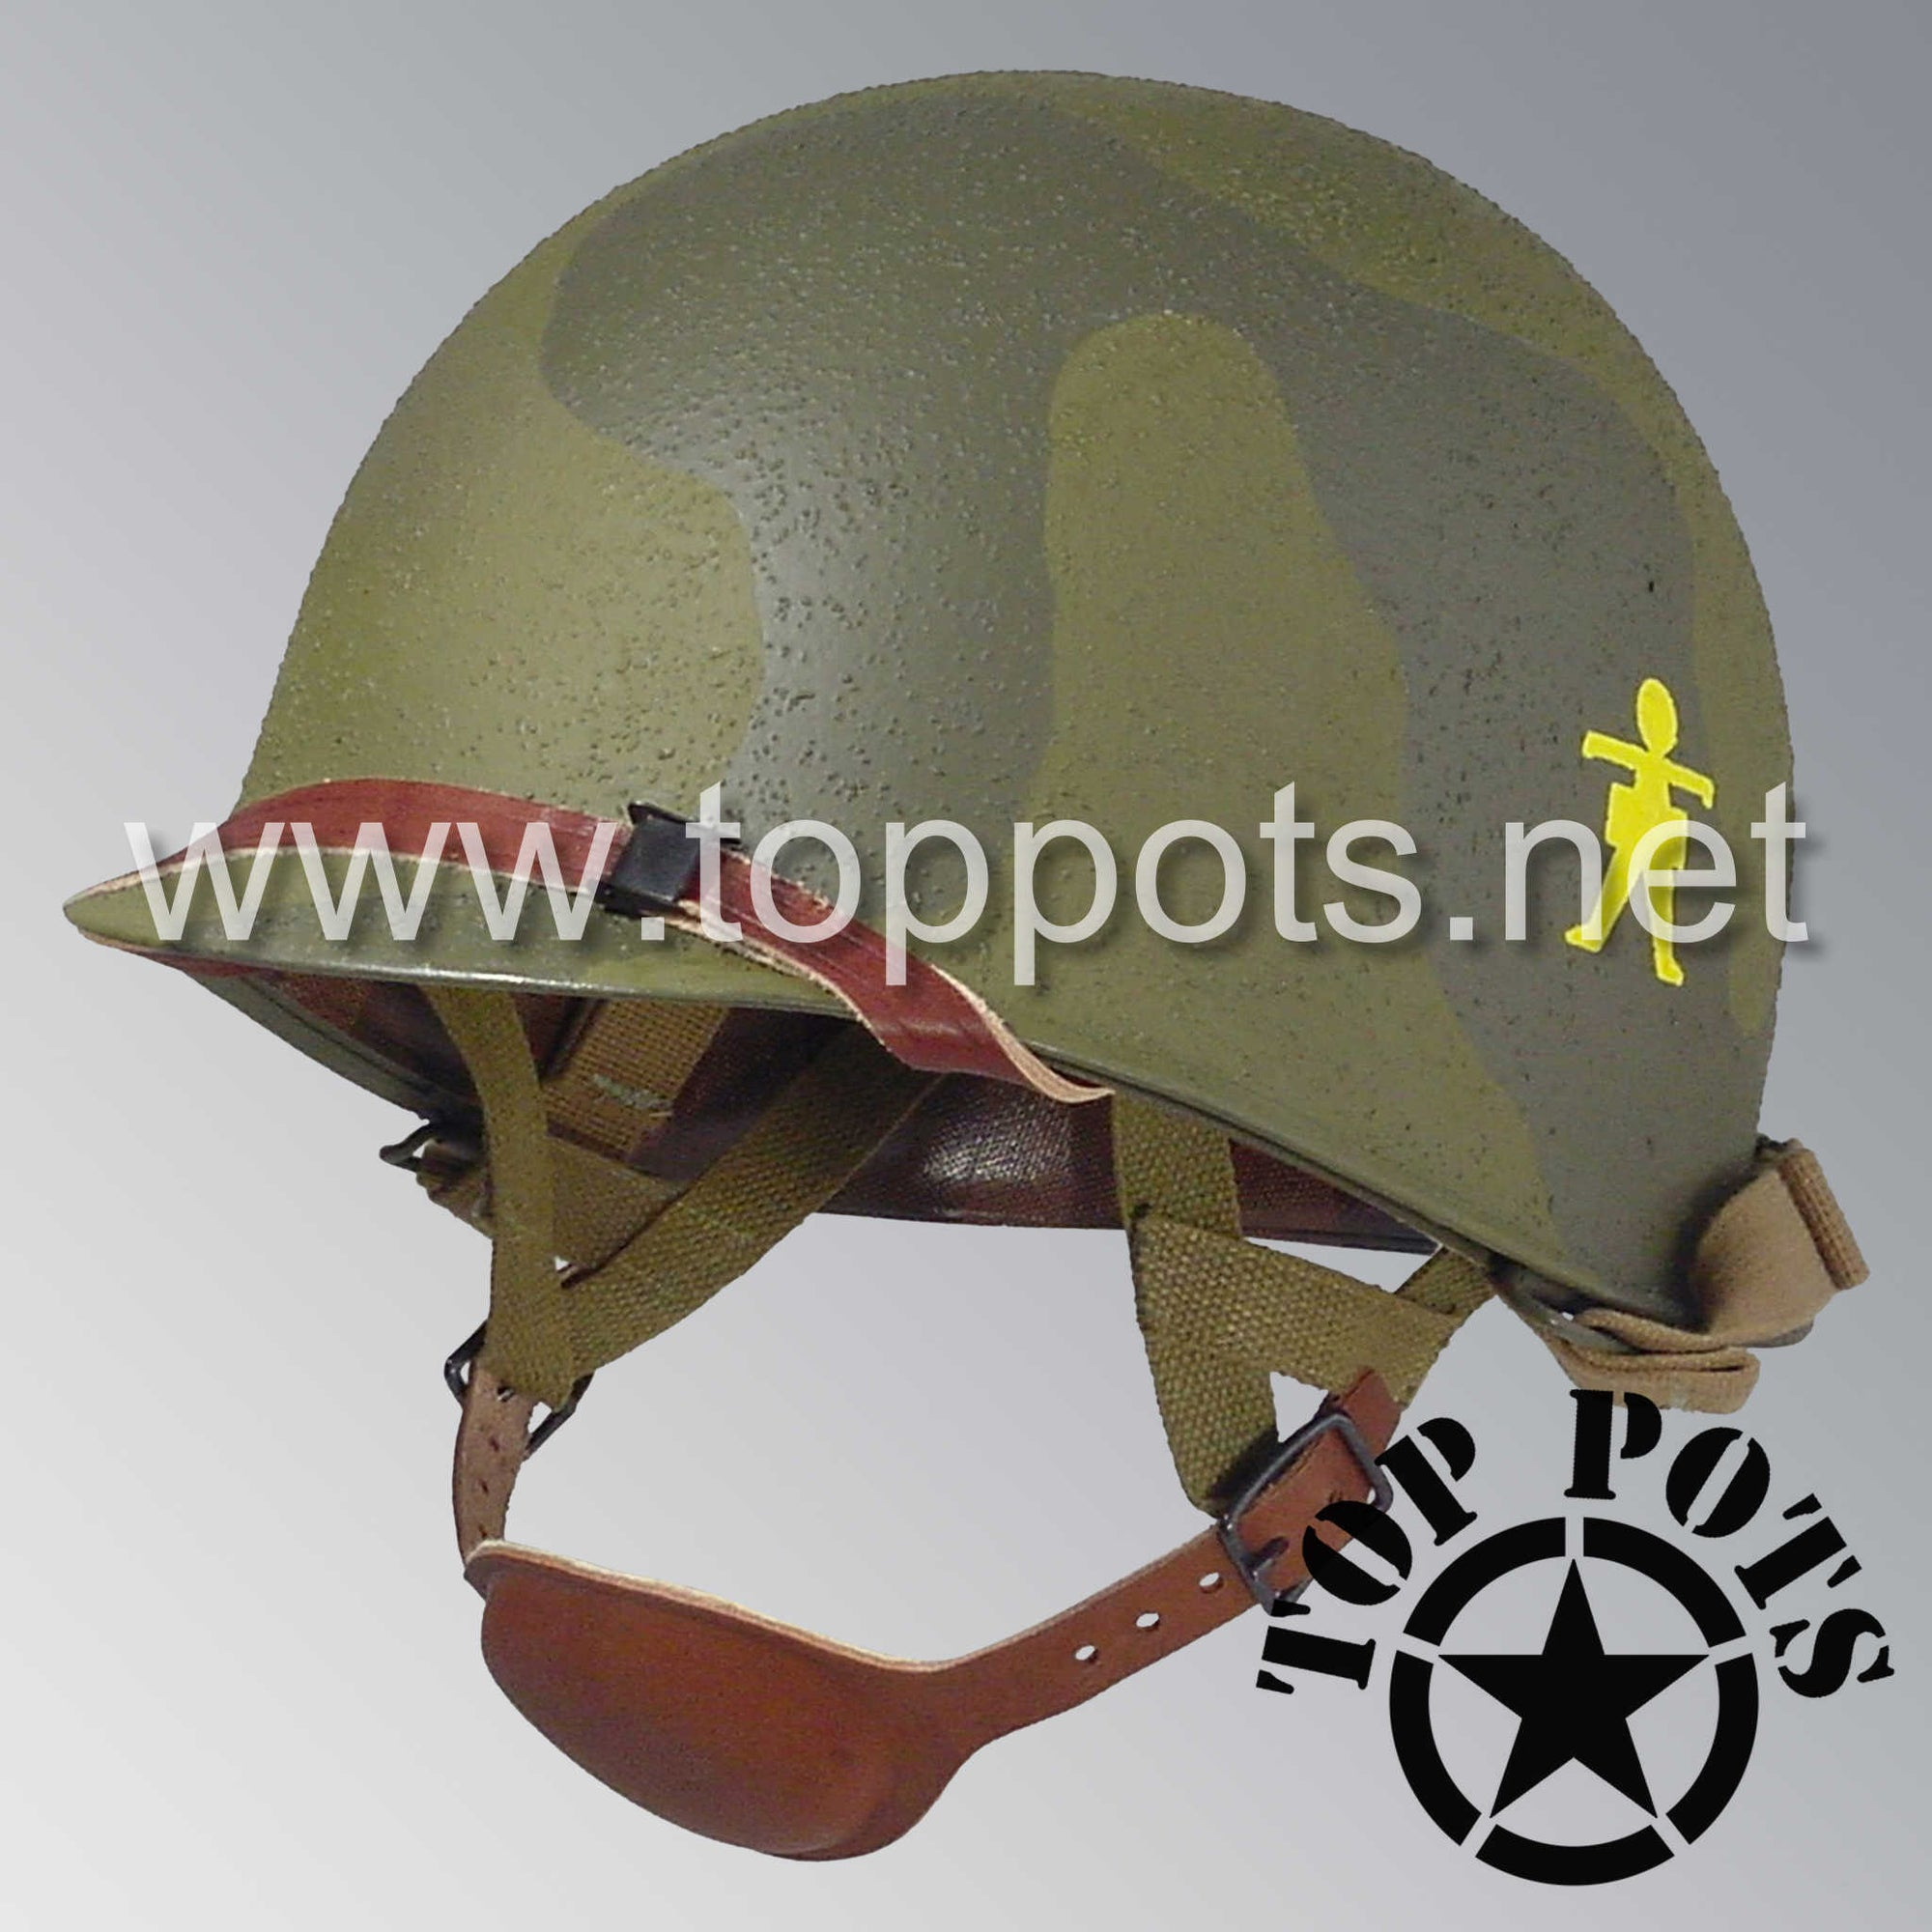 Image 1 of WWII US Army Restored Original M1C Paratrooper Airborne Helmet Swivel Bale Shell and Liner with 509th PIR Pathfinder Camouflage Emblem